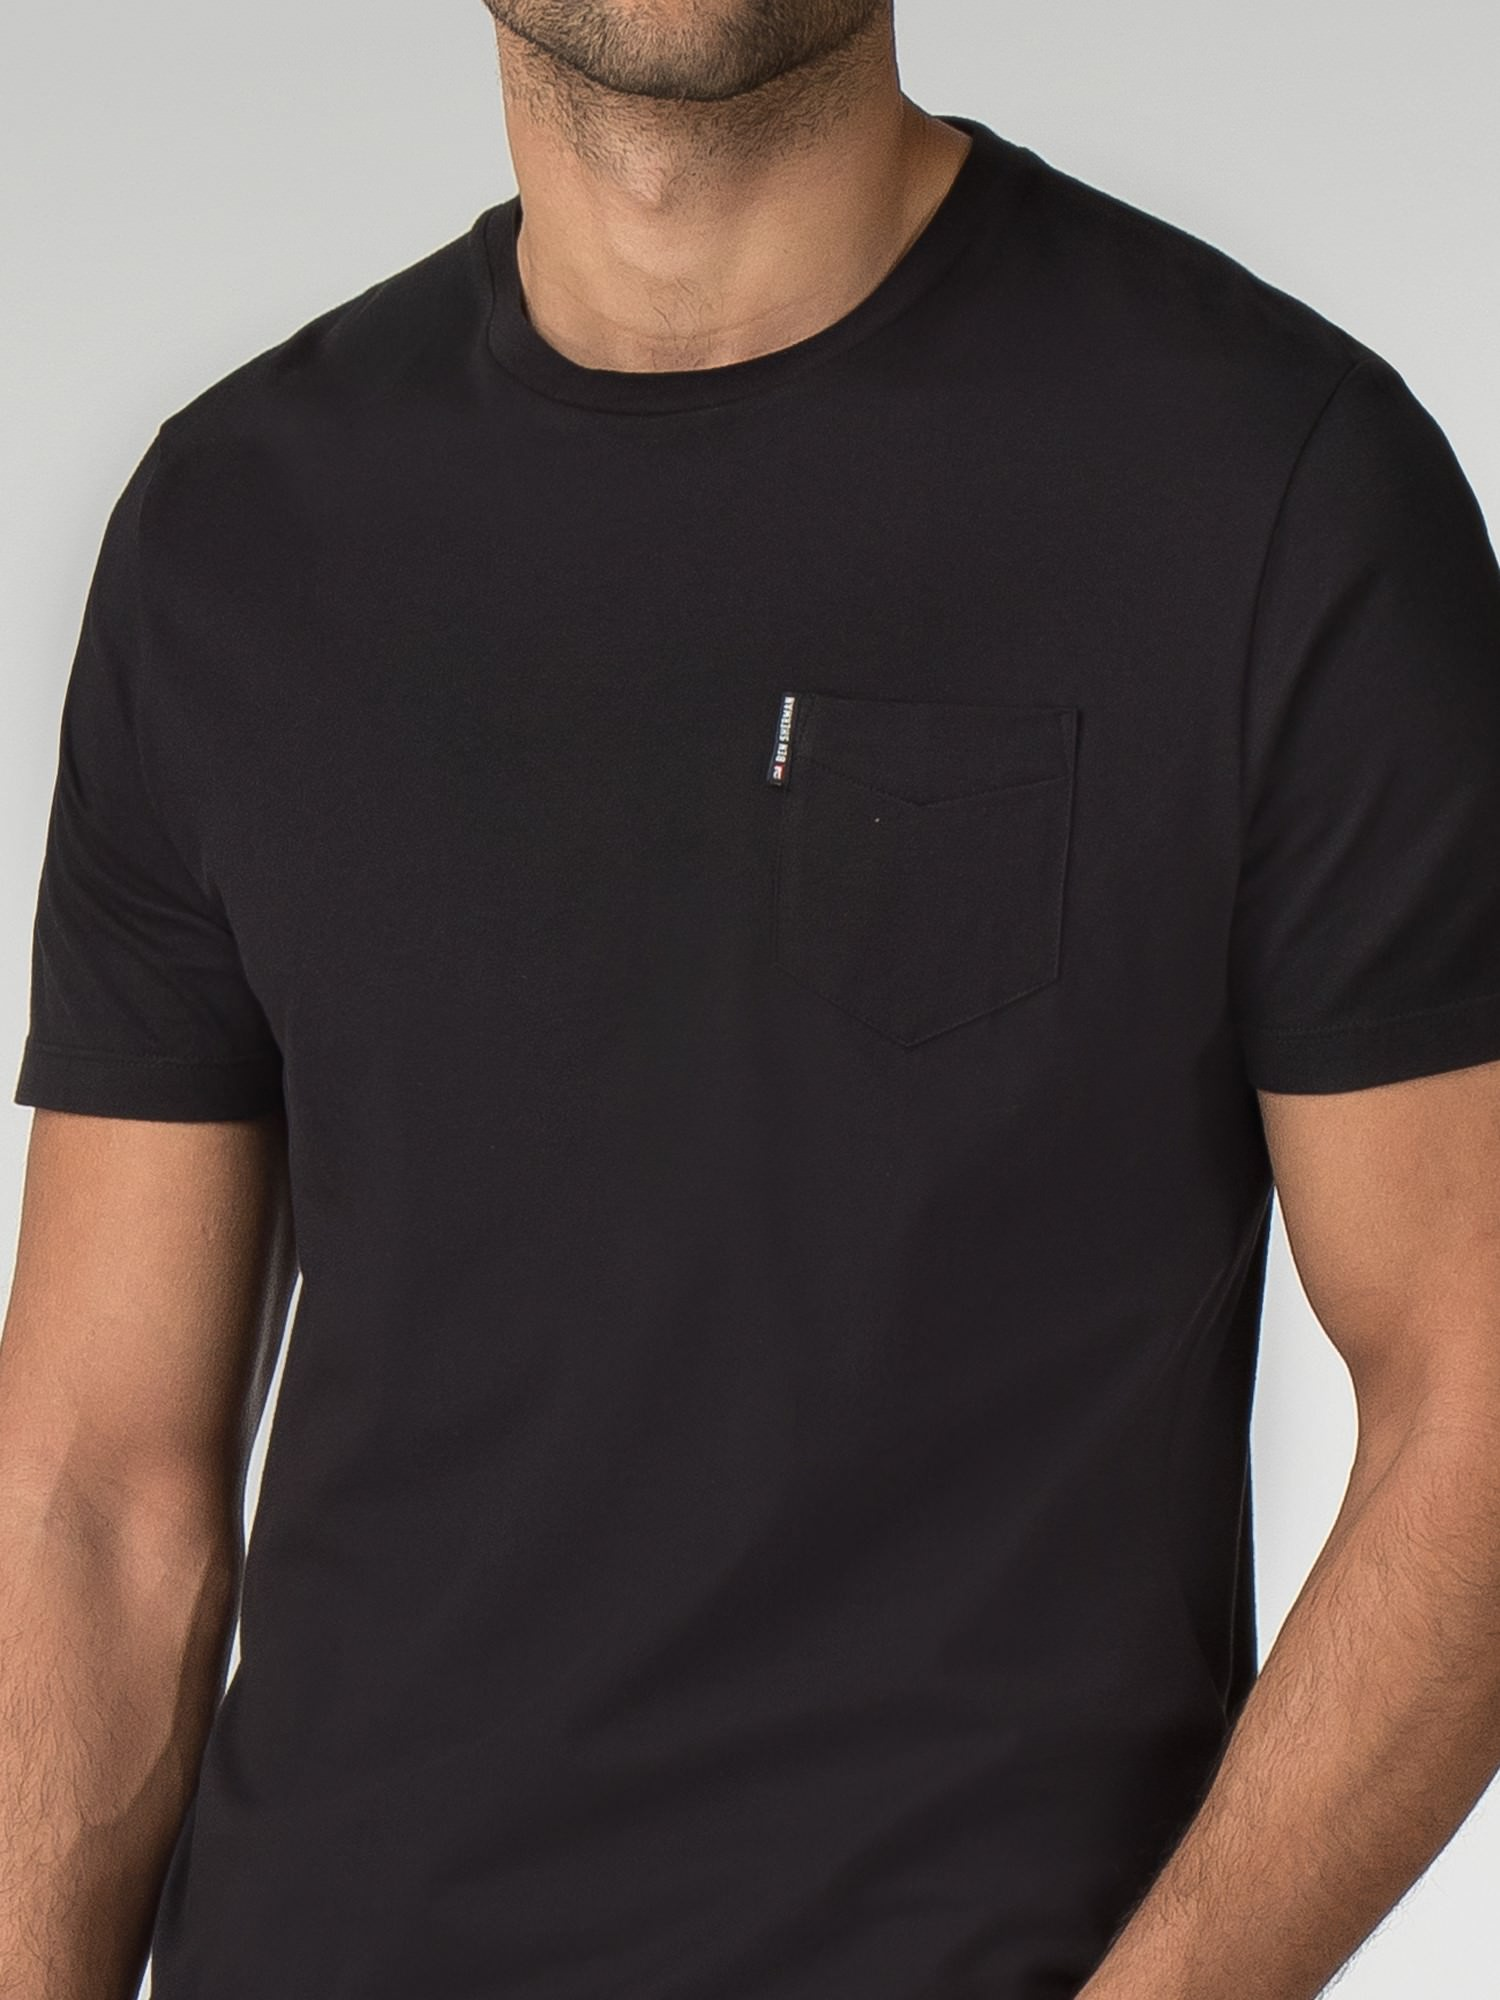 e669888d2 Men's Black Chest Pocket T-Shirt | Ben Sherman | Est 1963